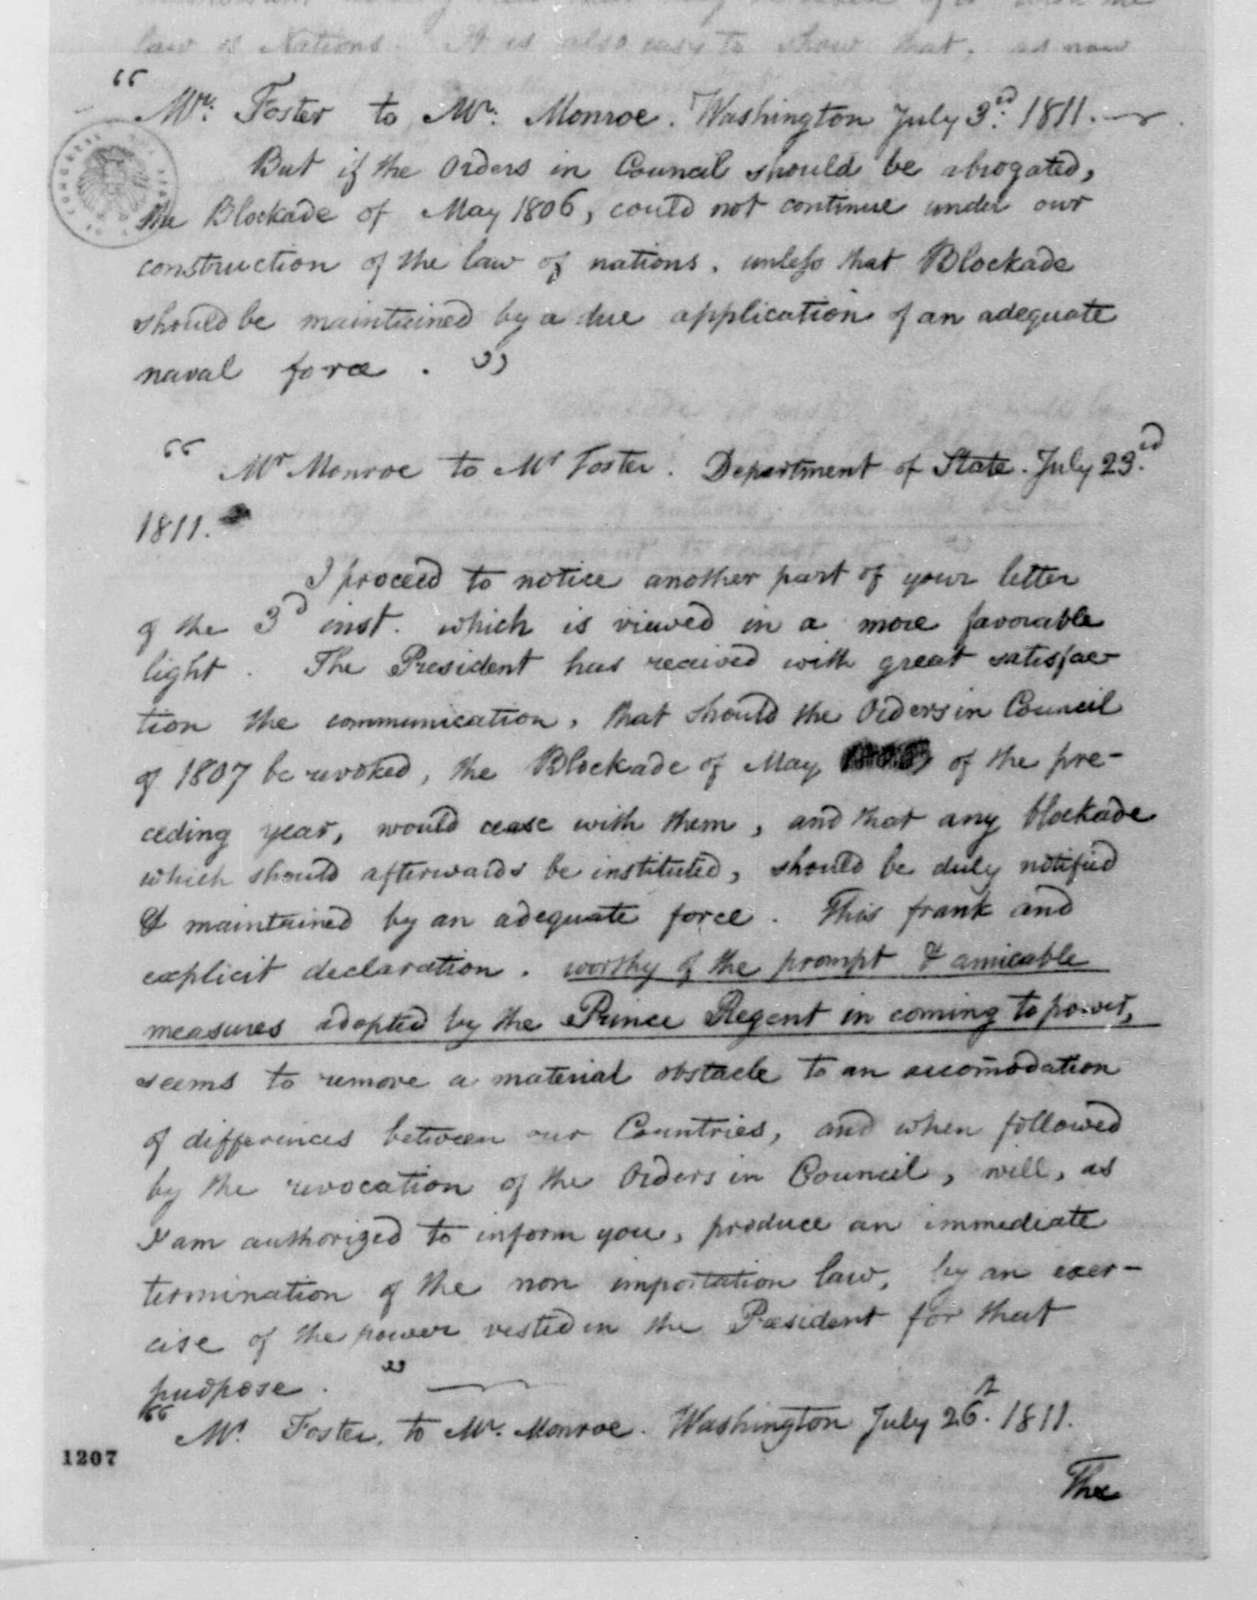 A. J. Foster to James Monroe, July 3, 1811. Extracts - Includes James Monroe to A. J. Foster, July 23, 1811, A. J. Foster to James Monroe, July 26, 1811 and James Monroe to A. J. Foster, Oct. 1, 1811.